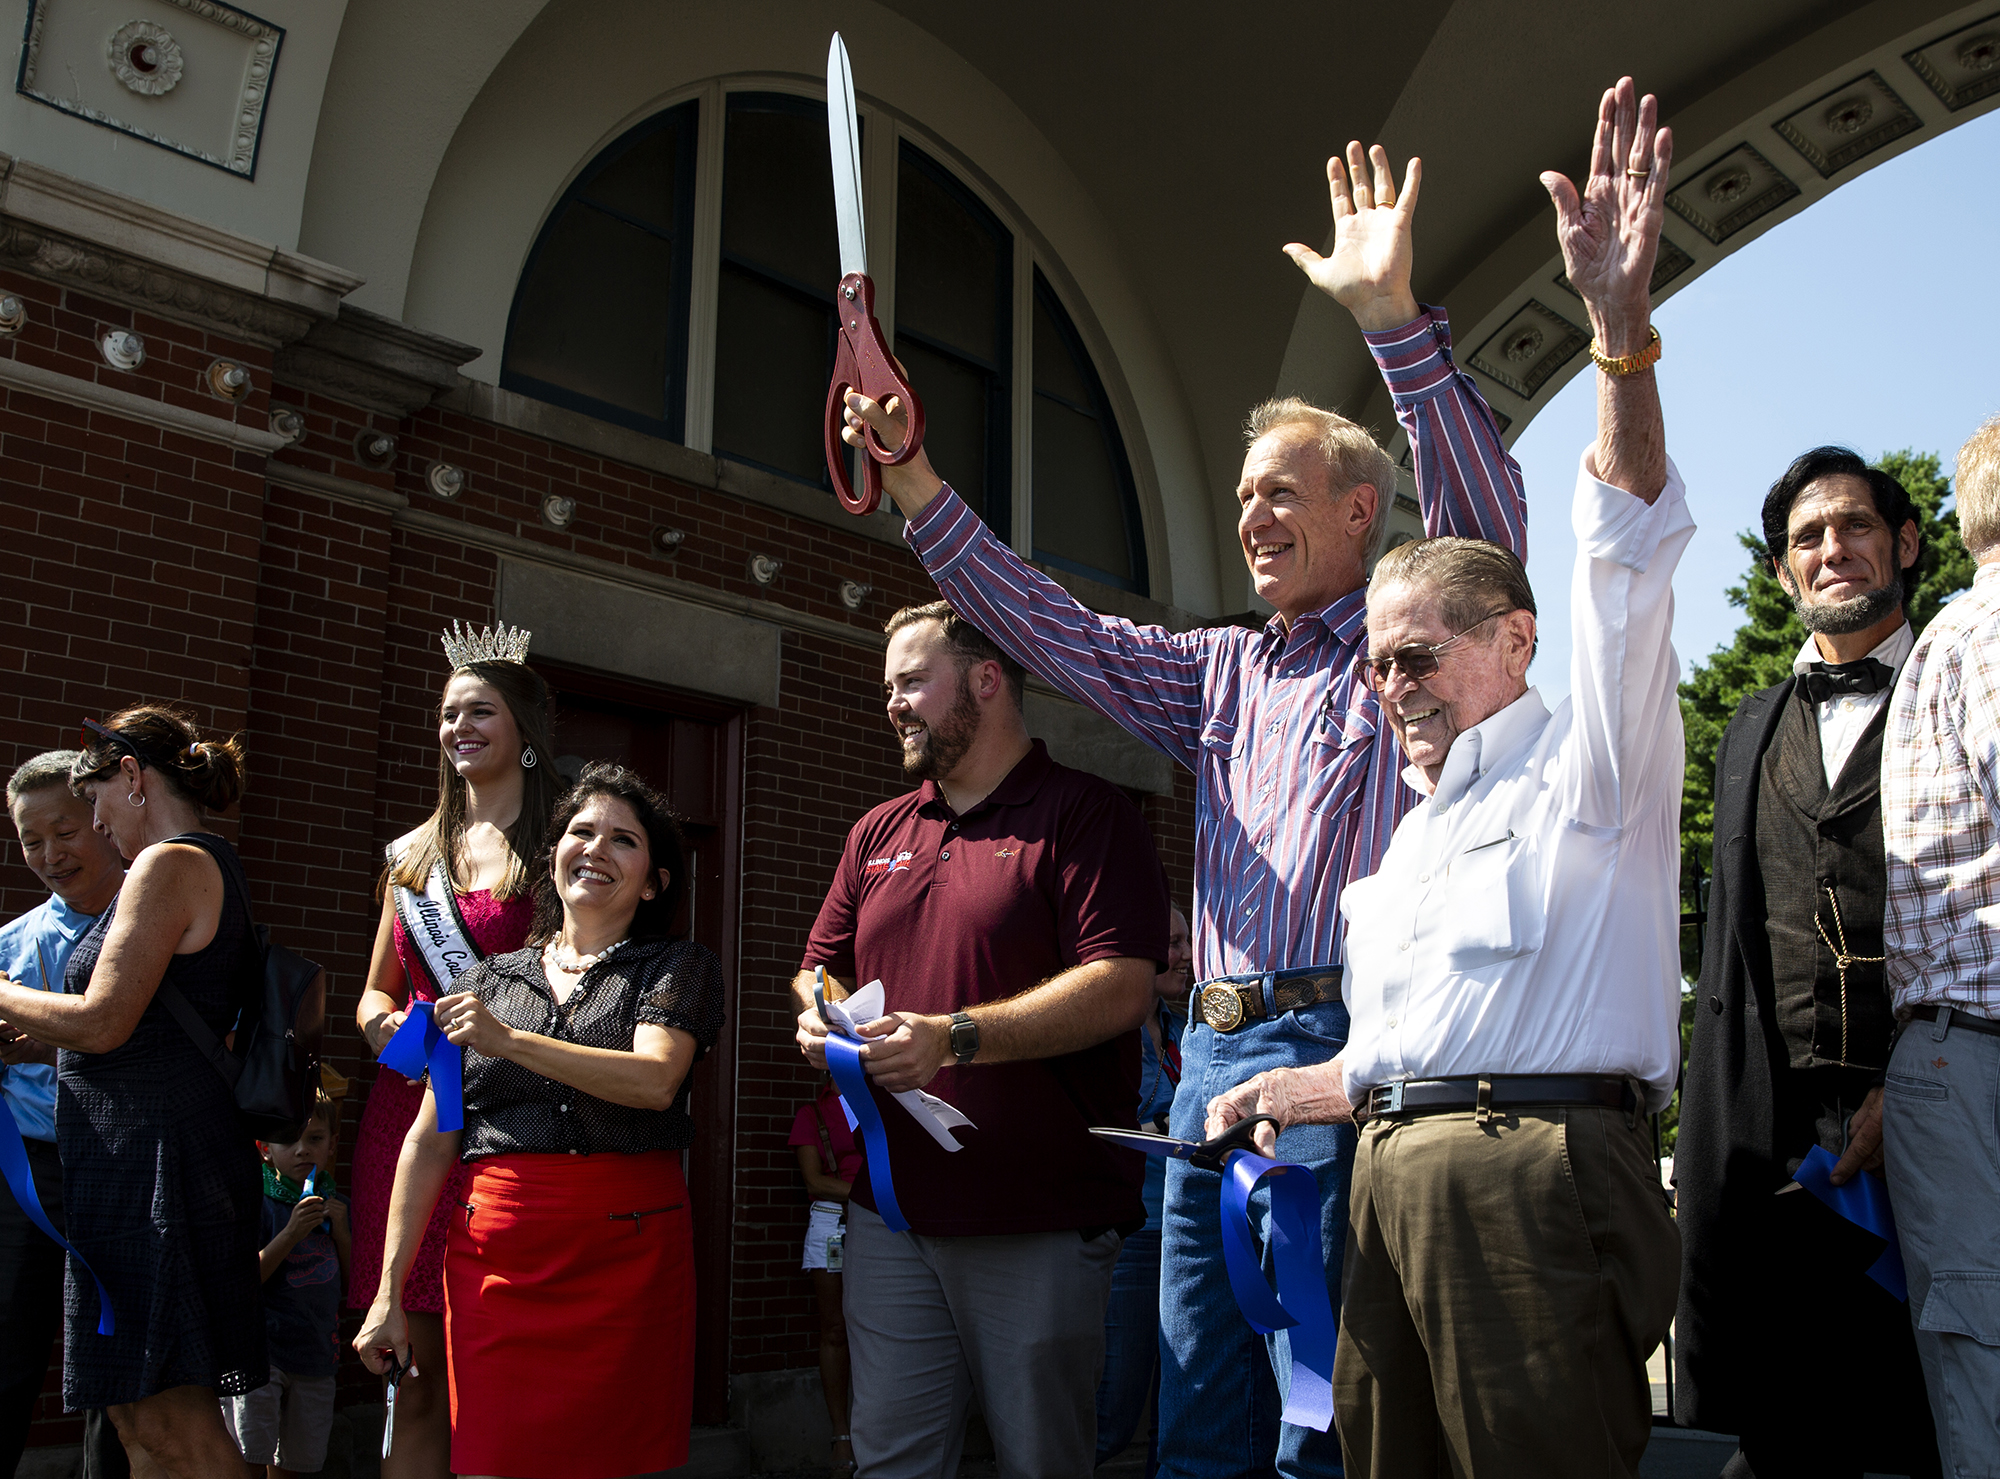 Gov. Bruce Rauner cuts the ribbon to officially open the 2018 Illinois State Fair Thursday, Aug. 9, 2018 on the Illinois State Fairgrounds in Springfield, Ill. With the governor are, from left, Miss Illinois County Fair Queen Samantha Hasselbring, Lt. Gov. Evelyn Sanguinetti, Illinois State Fair manager Luke Sailer, Gov. Rauner, and Robert Wiseman, State Fair Twilight Parade grand marshal. [Rich Saal/The State Journal-Register]